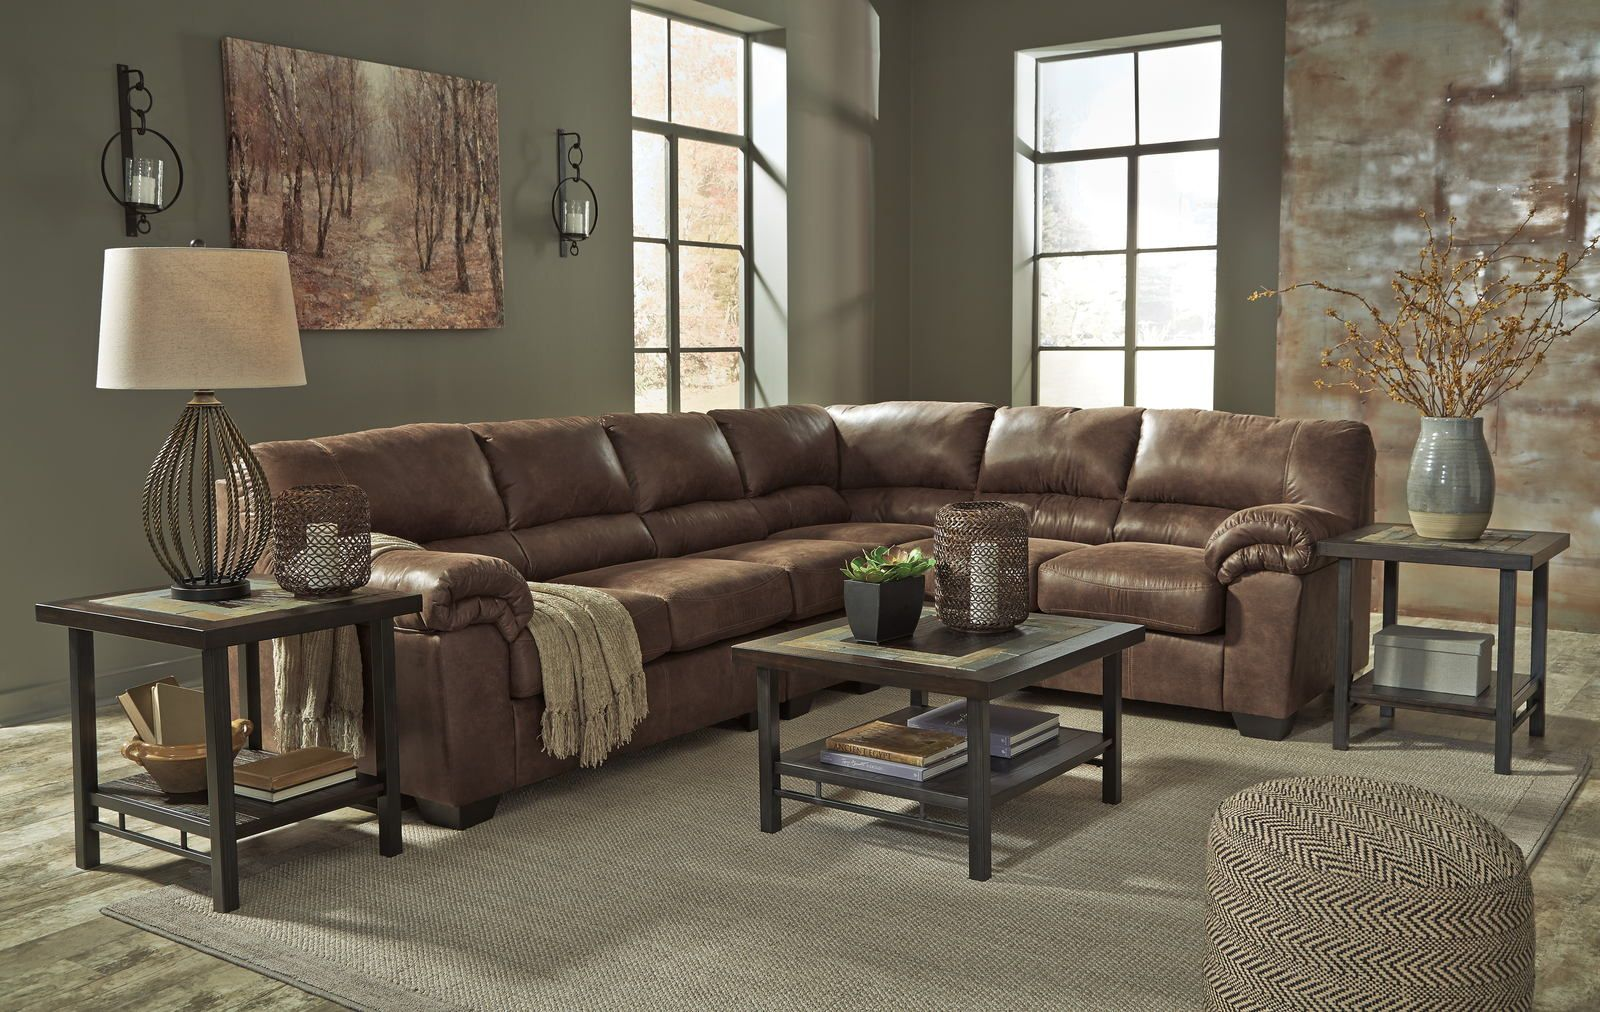 Best Bladen 2 Piece Sectional Living Room Set In Coffee 640 x 480